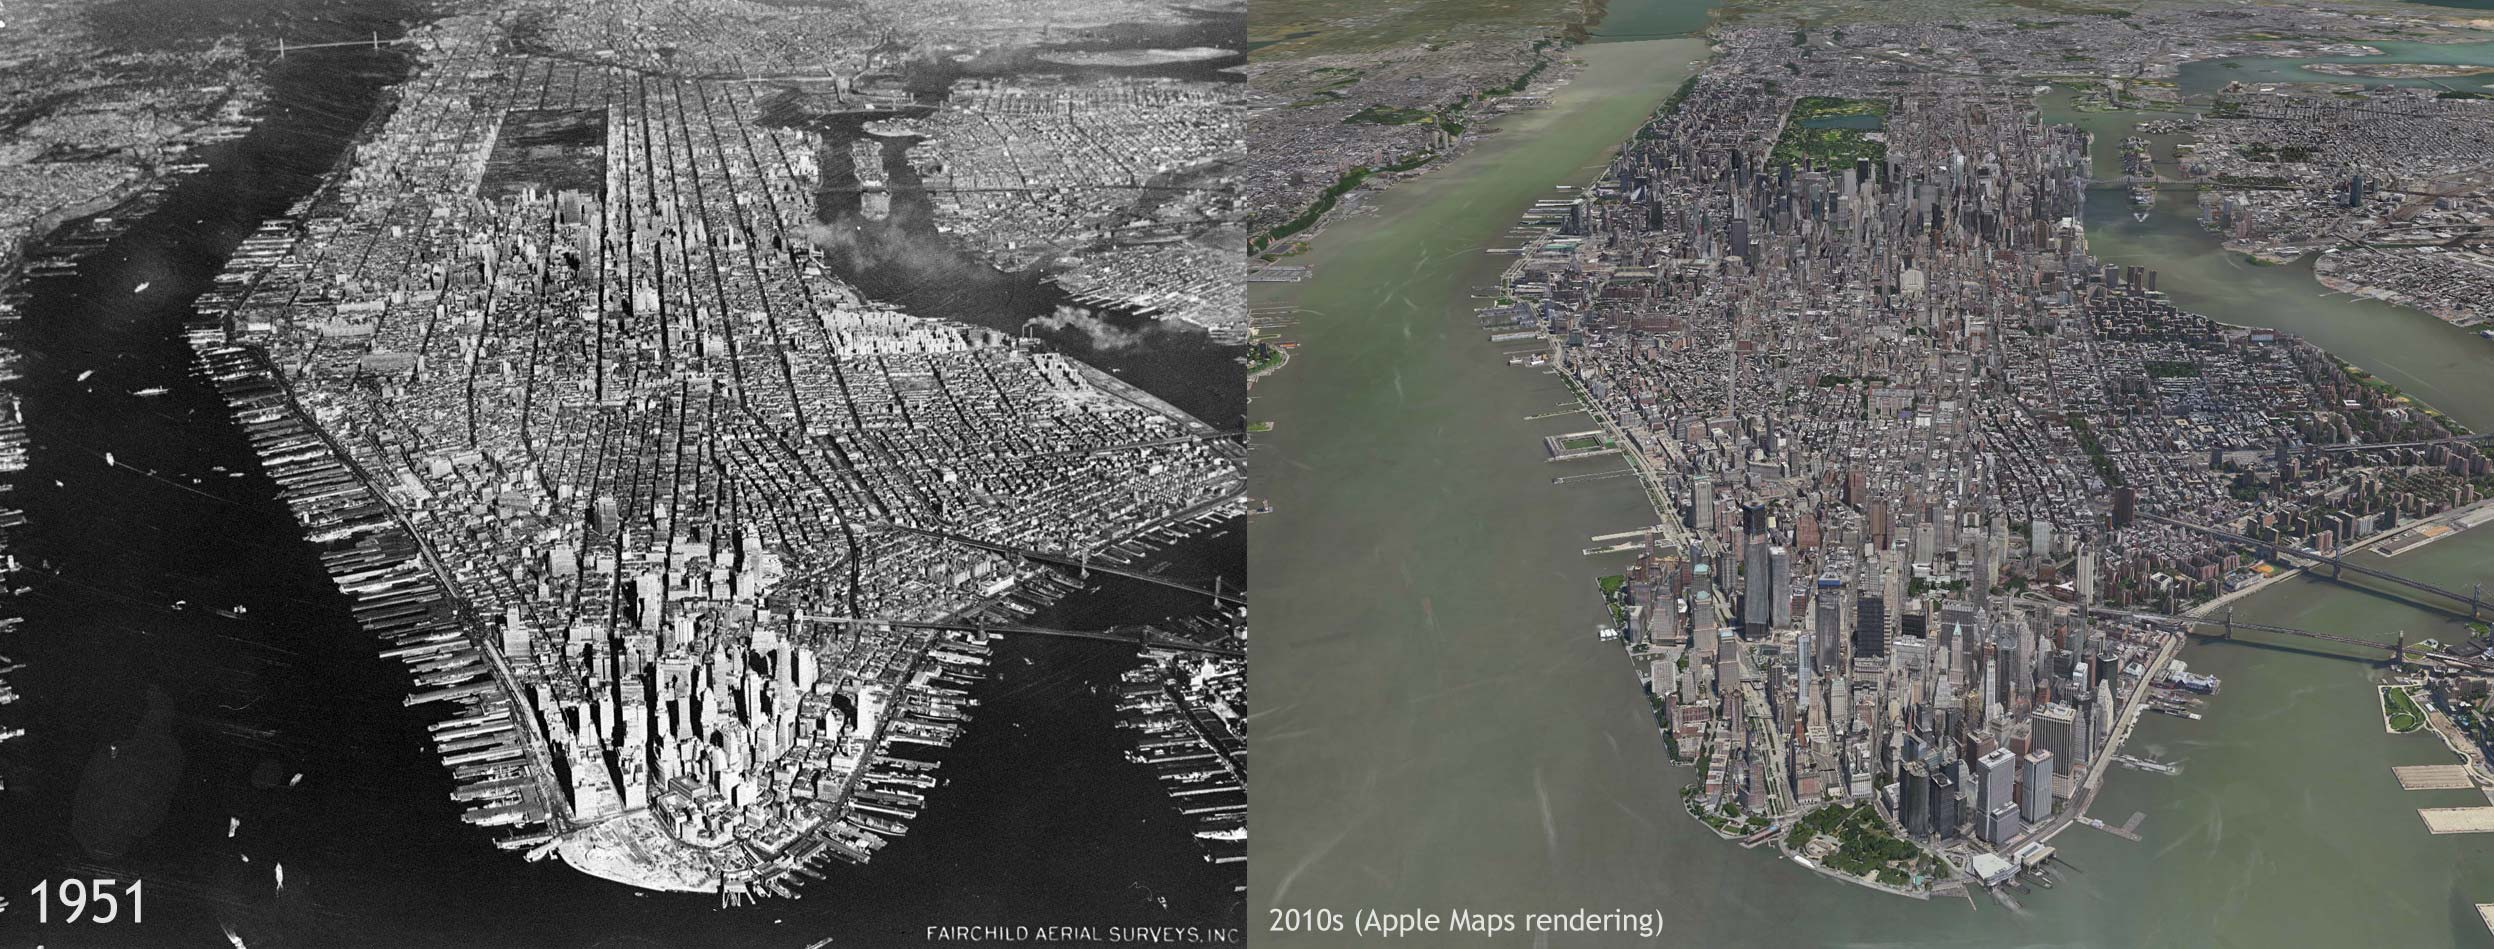 Manhattan - Then and Now